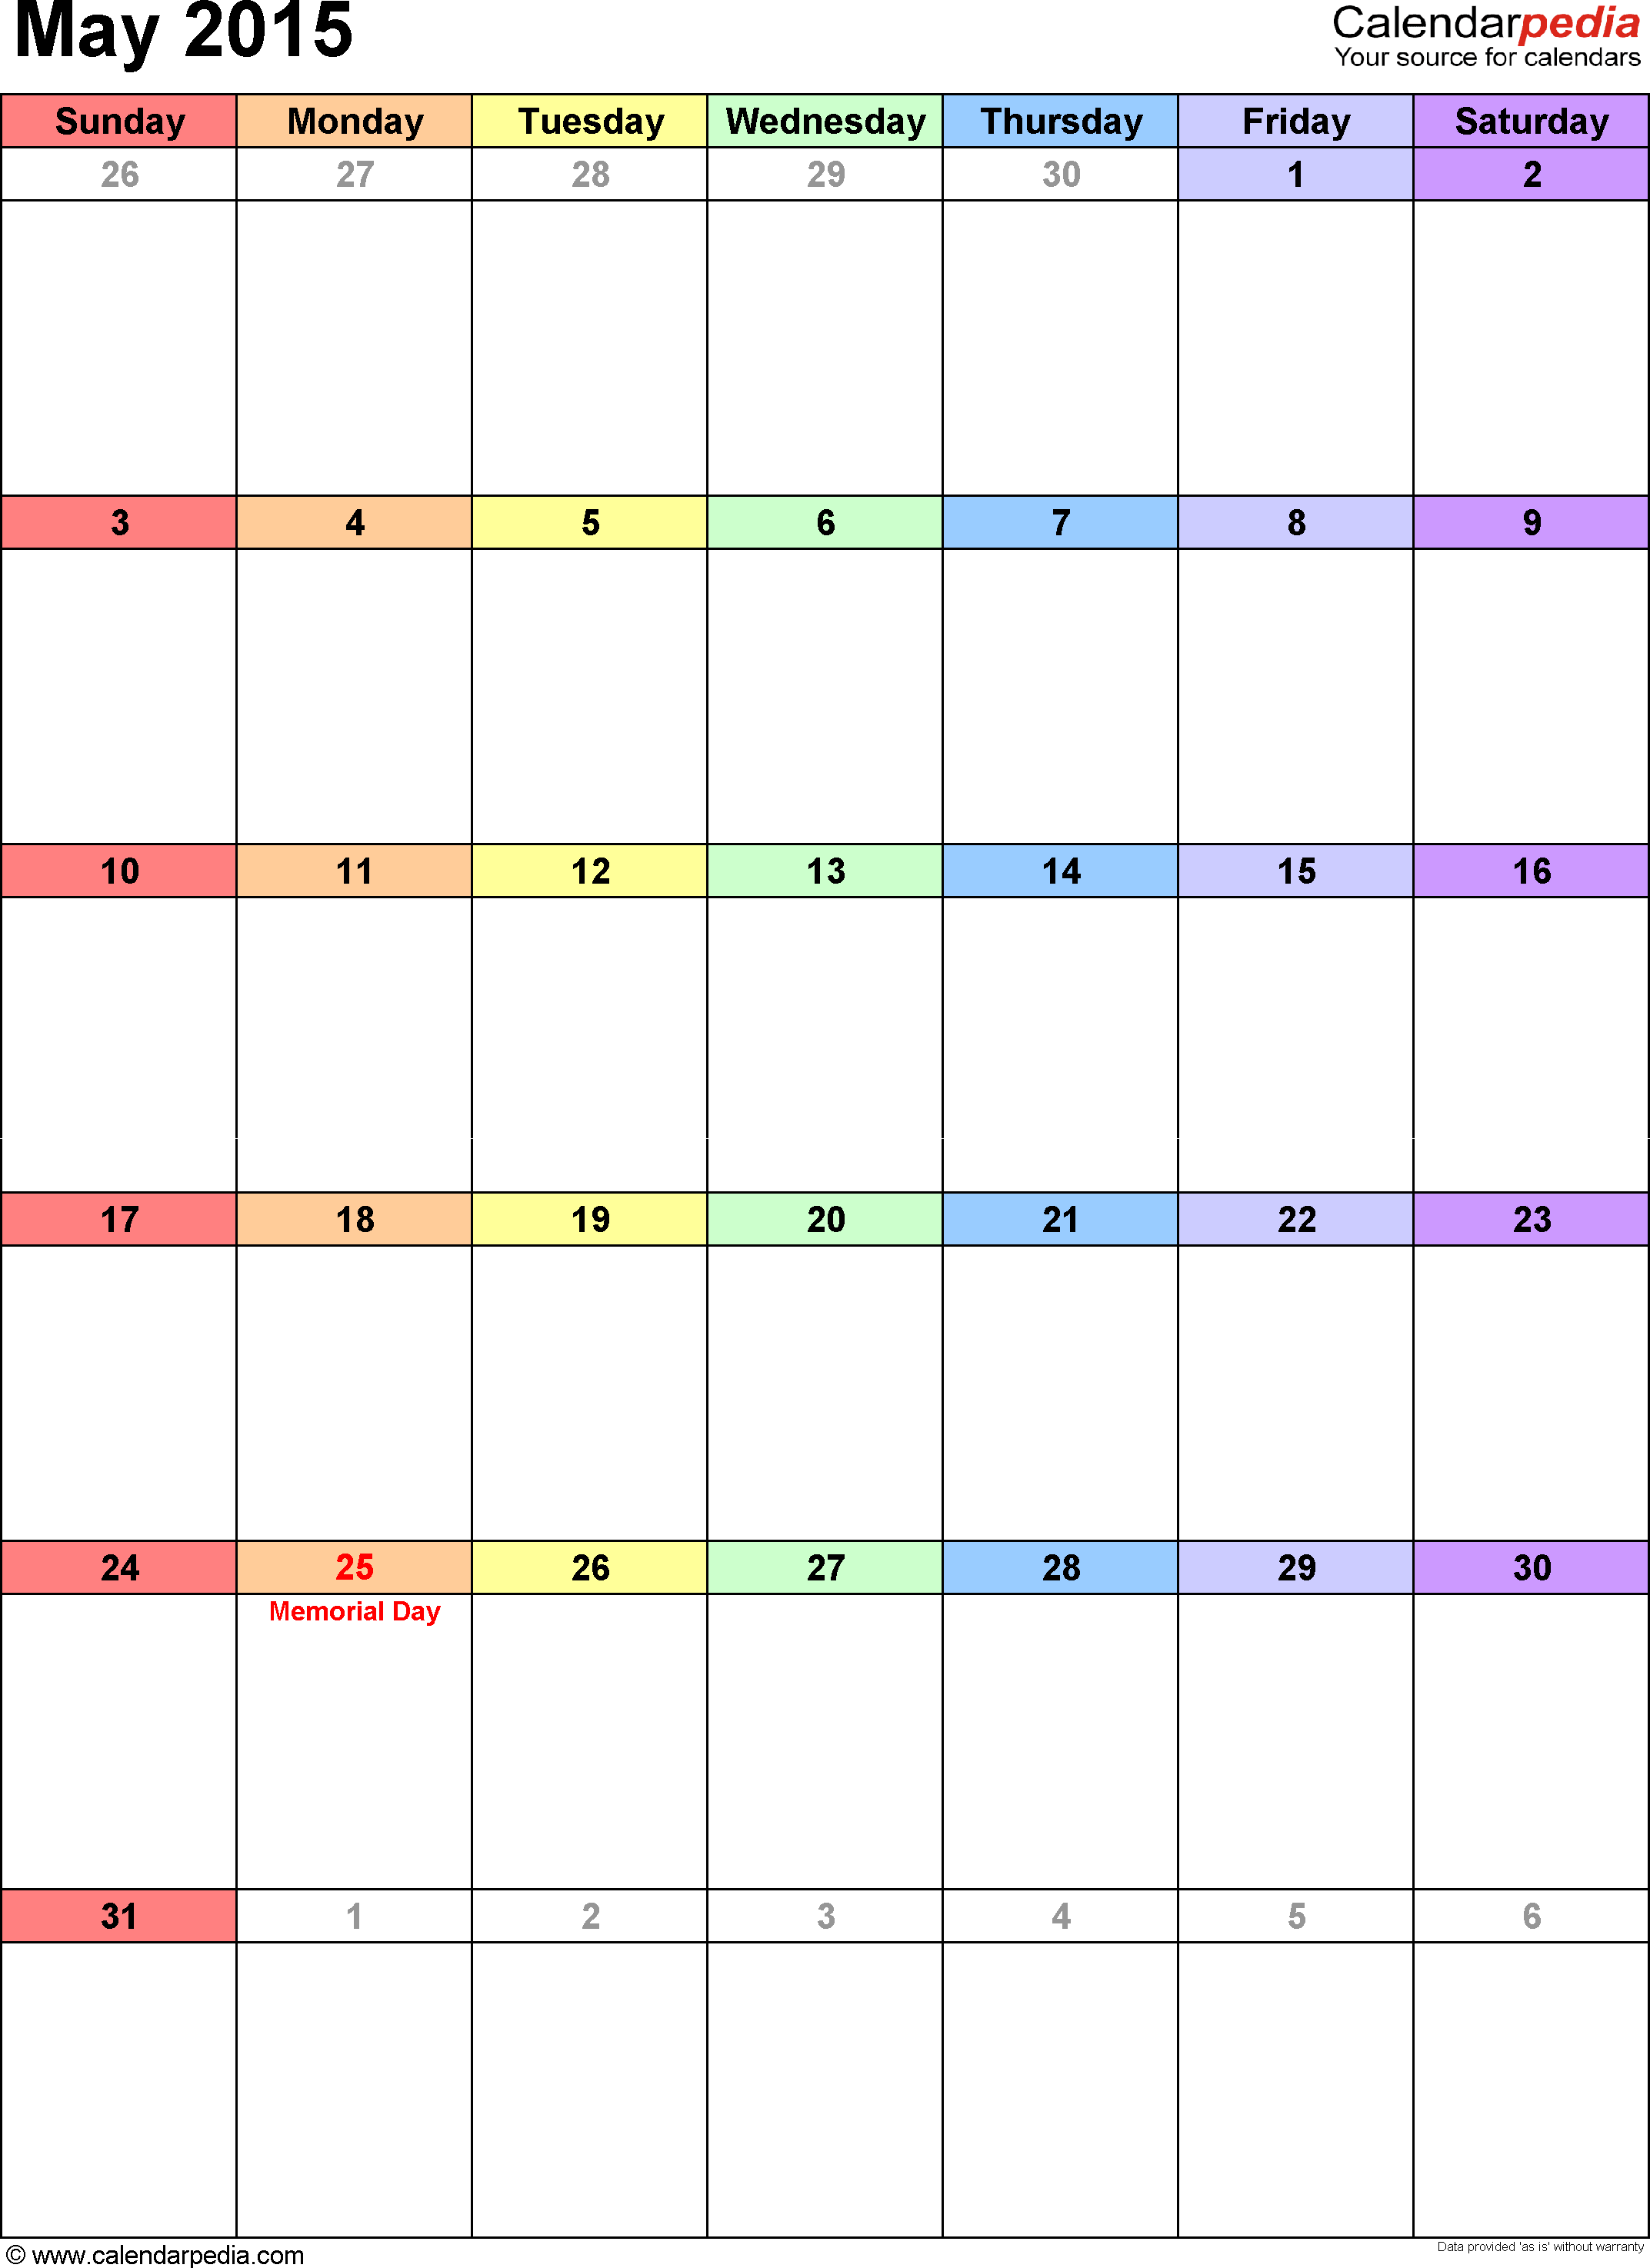 May 2015 calendar as printable Word, Excel & PDF templates